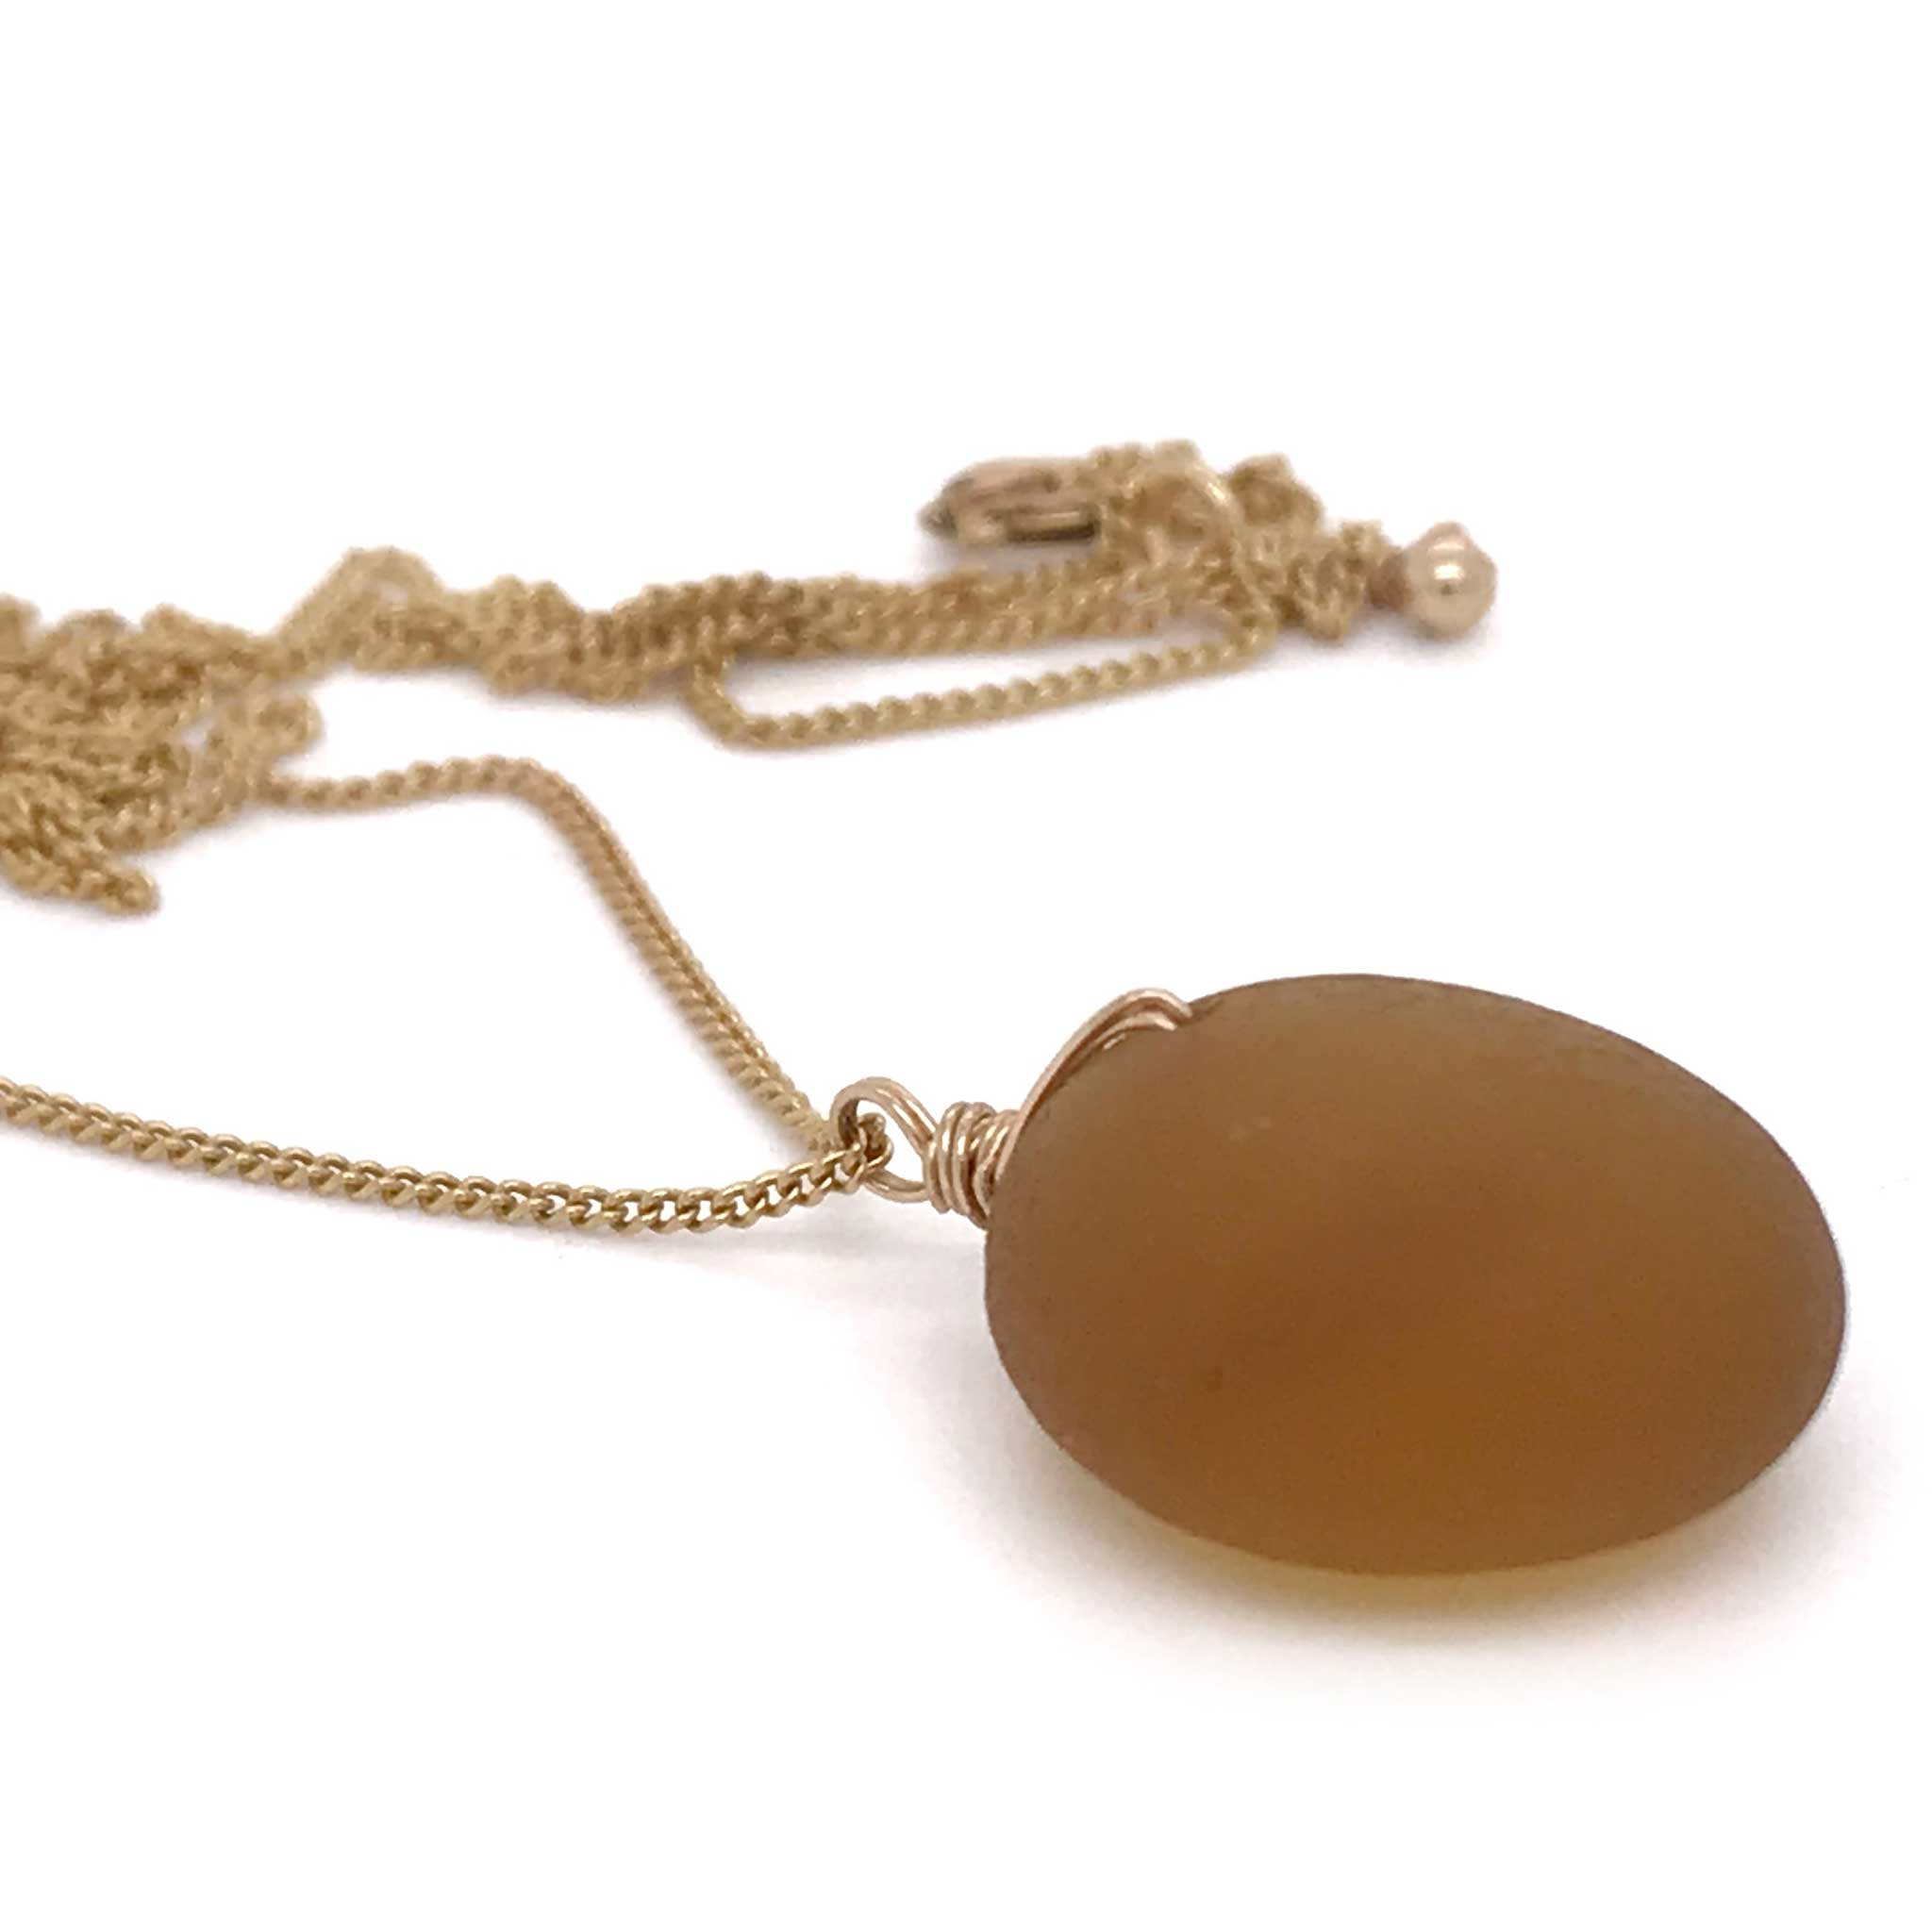 rare amber seaglass pendant on fine gold chain kriket broadhurst jewellery near me